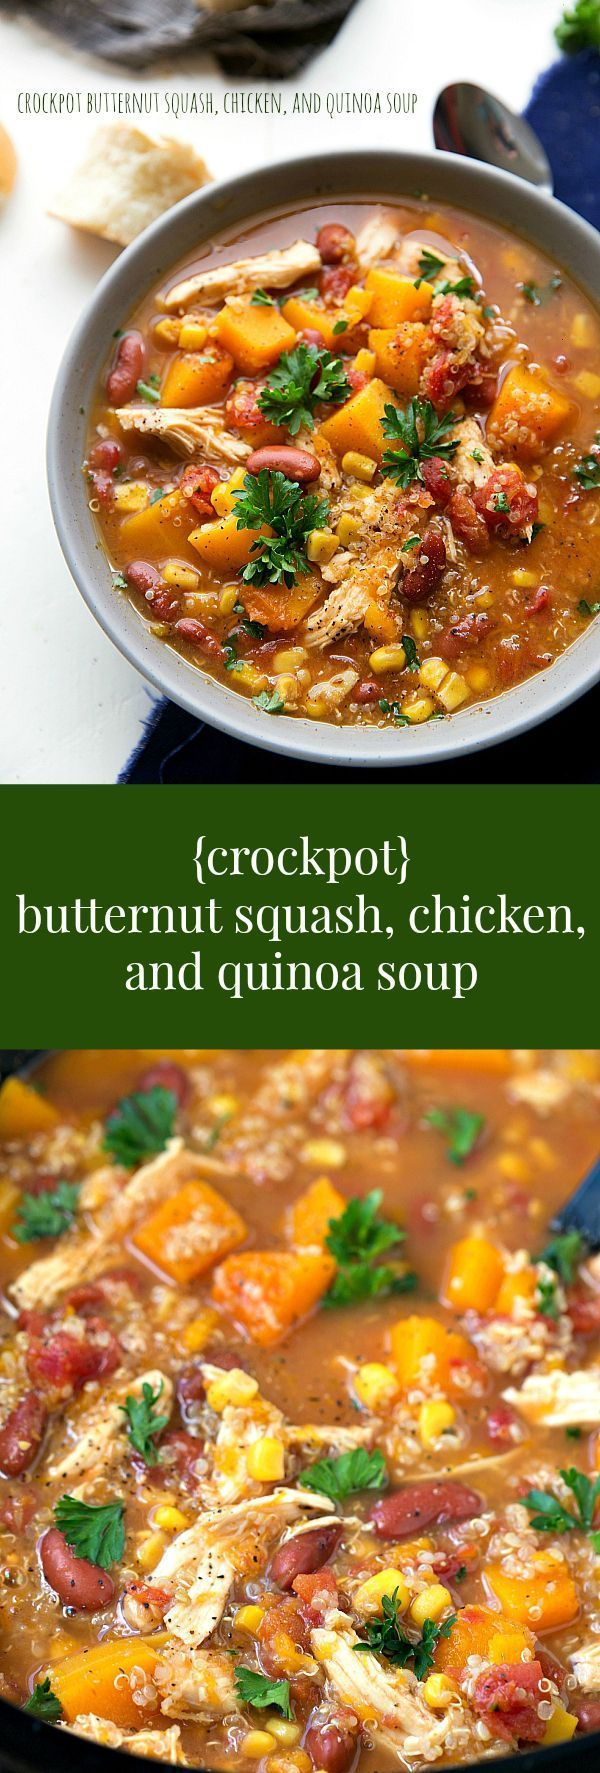 A super simple slow cooker butternut squash, chicken, and quinoa soup. The crockpot does all the work!